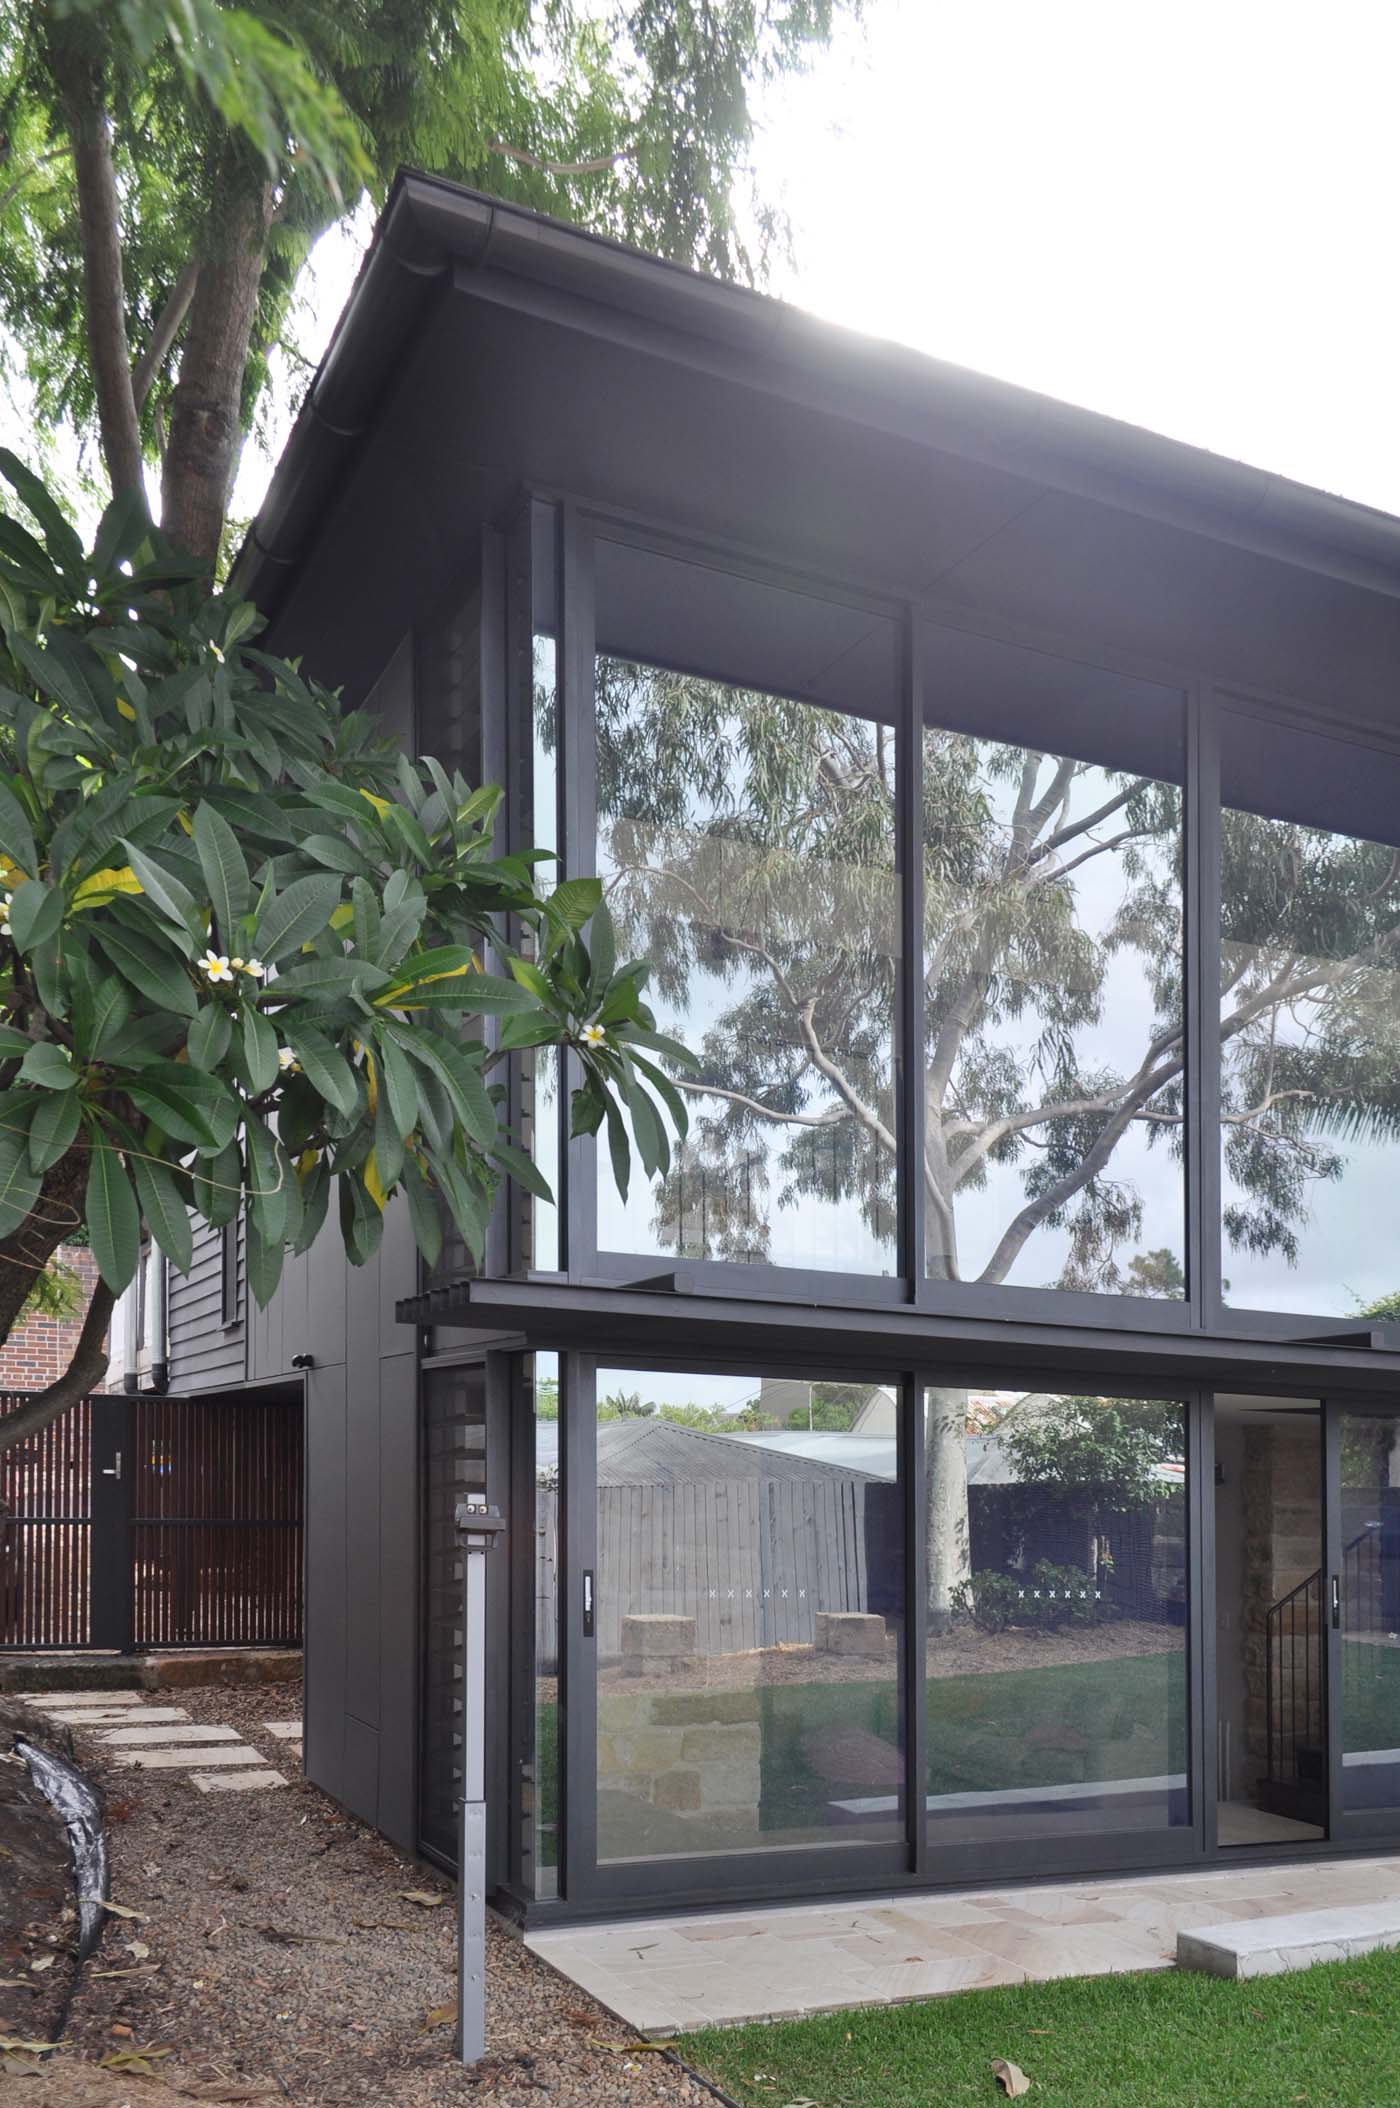 Balmain Cottage by award winning Sydney firm Sam Crawford Architects. View from backyard to large glass façade connecting the interior and exterior